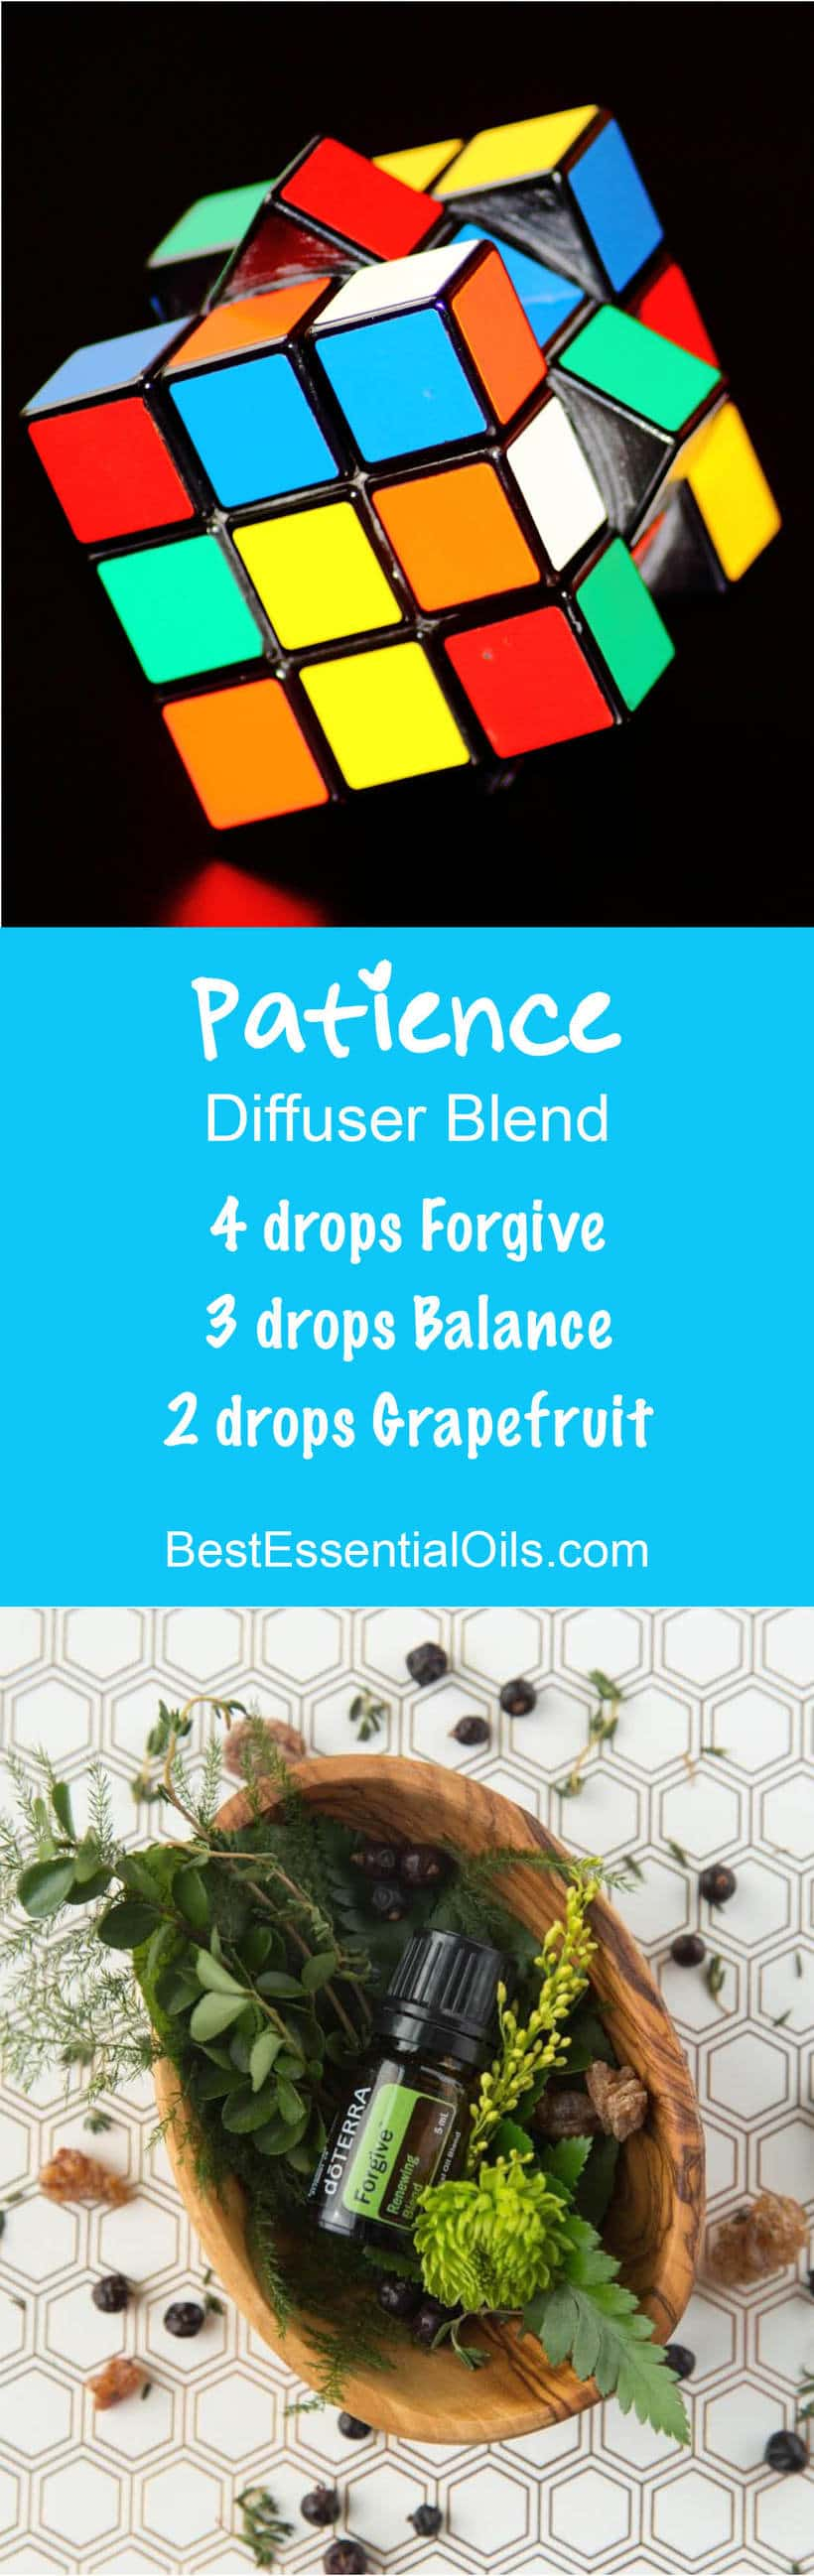 Patience doTERRA Diffuser Blend